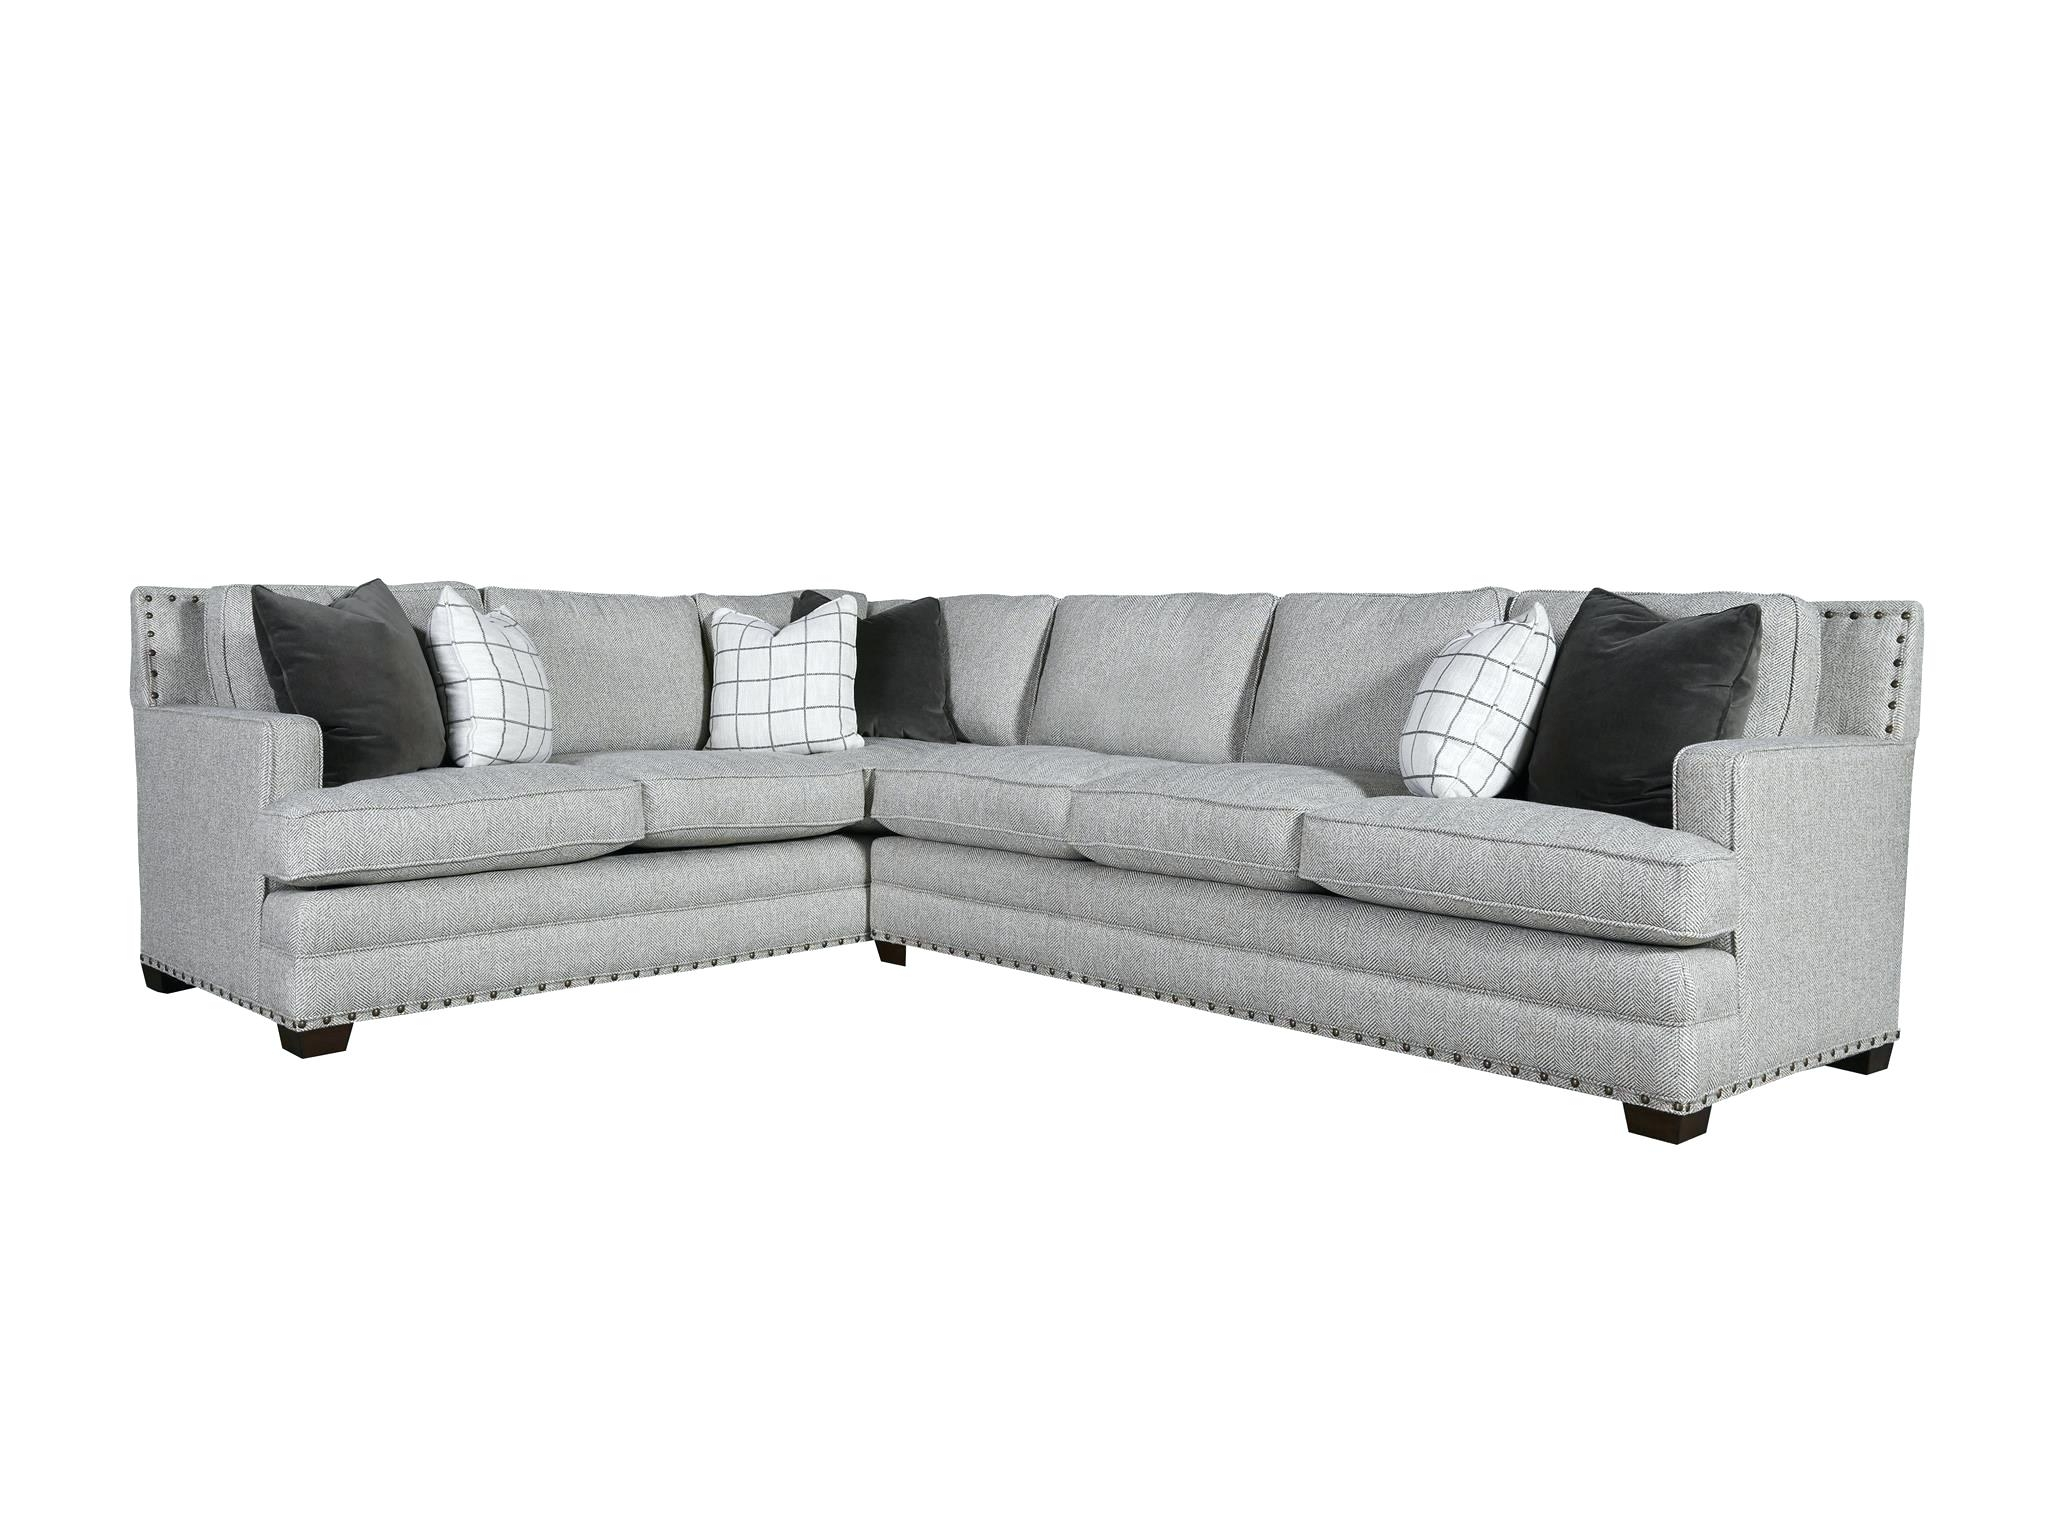 Latest High Point Nc Sectional Sofas Pertaining To Universal Furniture High Point Nc The Wow Factor A Tour Of (View 13 of 15)